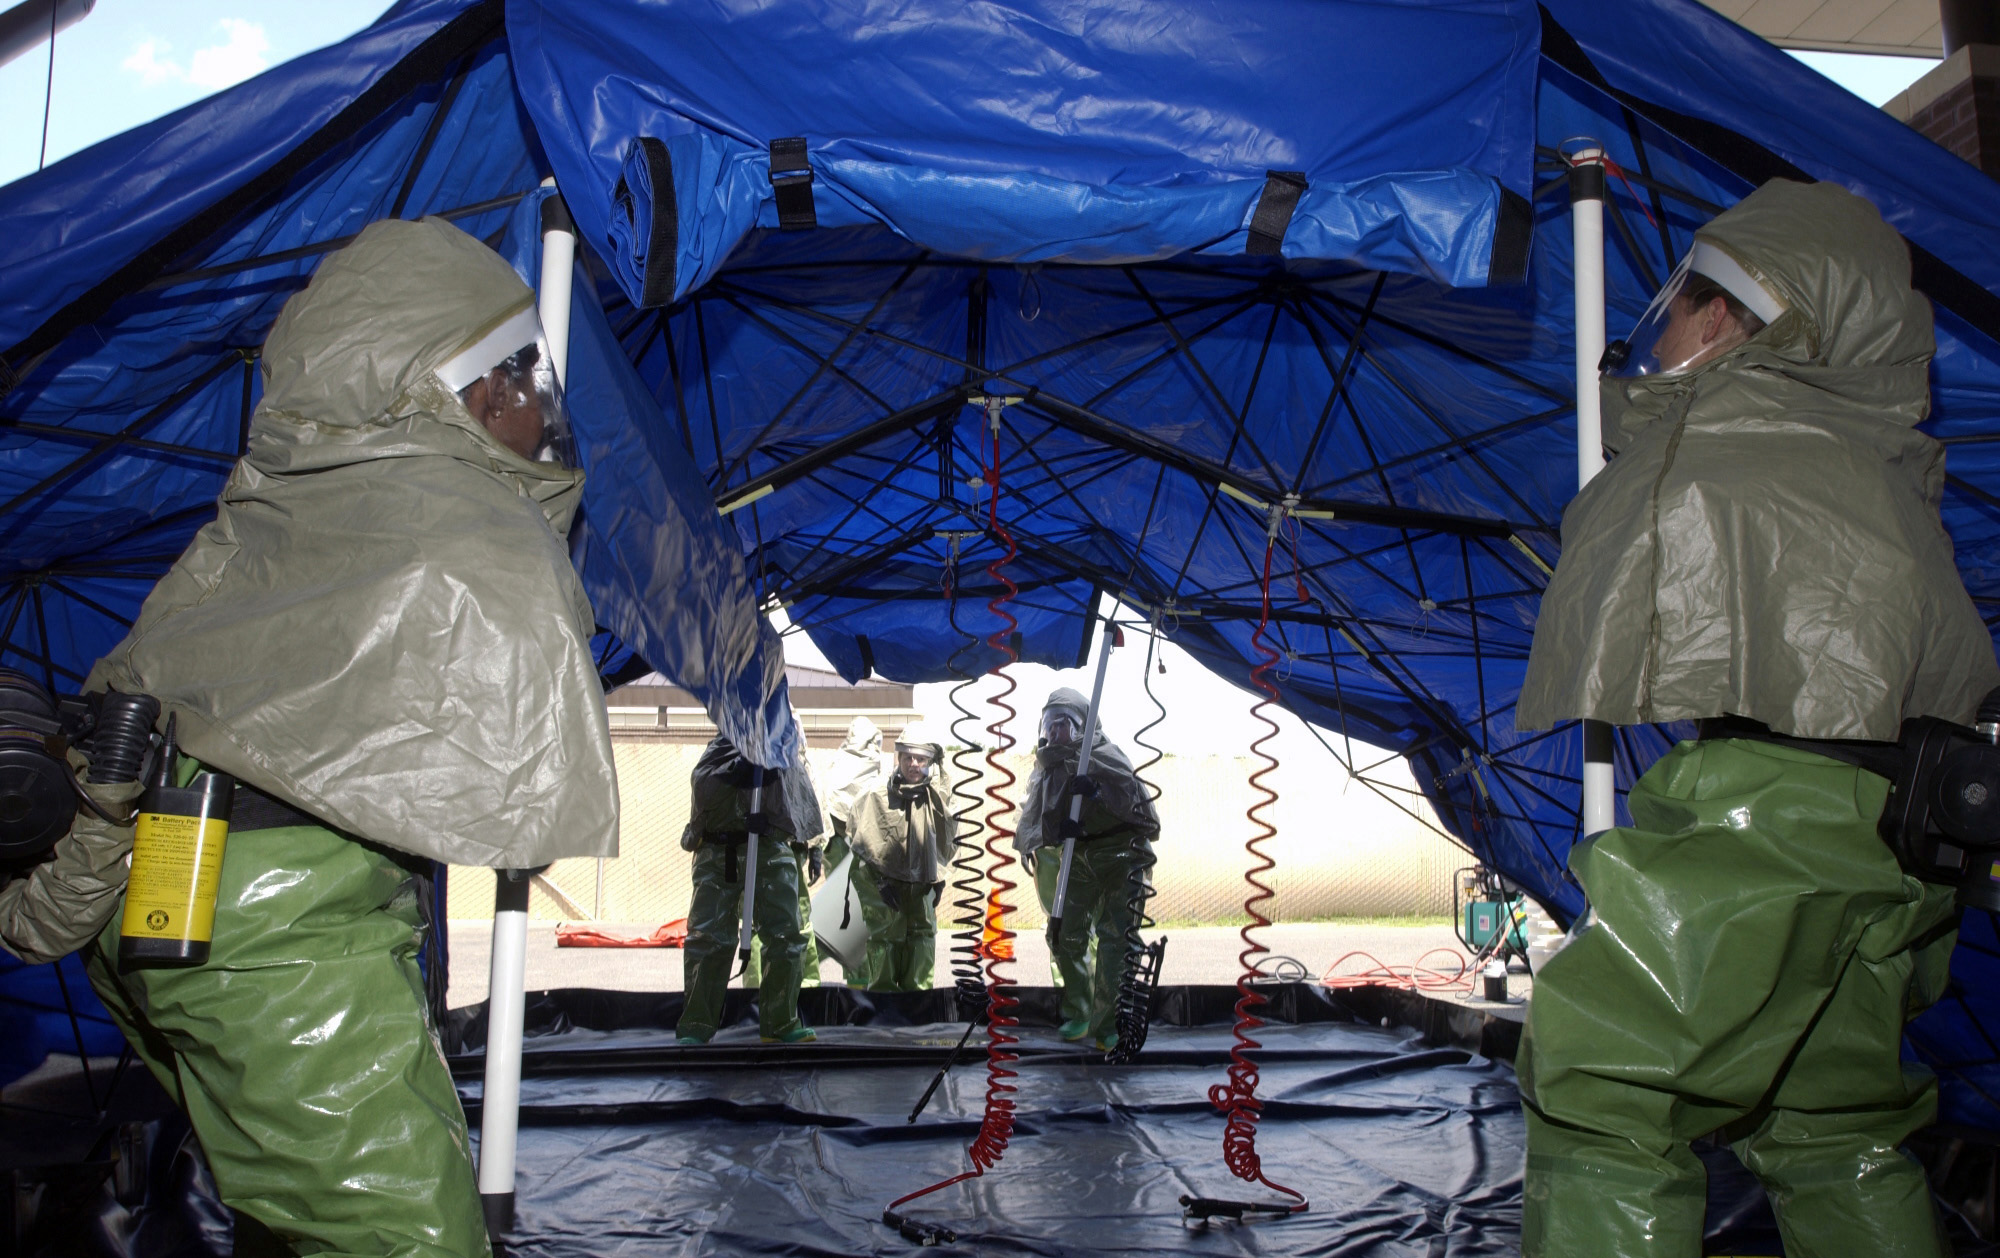 ... Decontamination Team 305th Medical Group (MDG) McGuire Air Force Base (AFB) New Jersey (NJ) set up an In Place Patient Decontamination Tent during a ... & File:US Air Force (USAF) Airmen of the Patient Decontamination ...